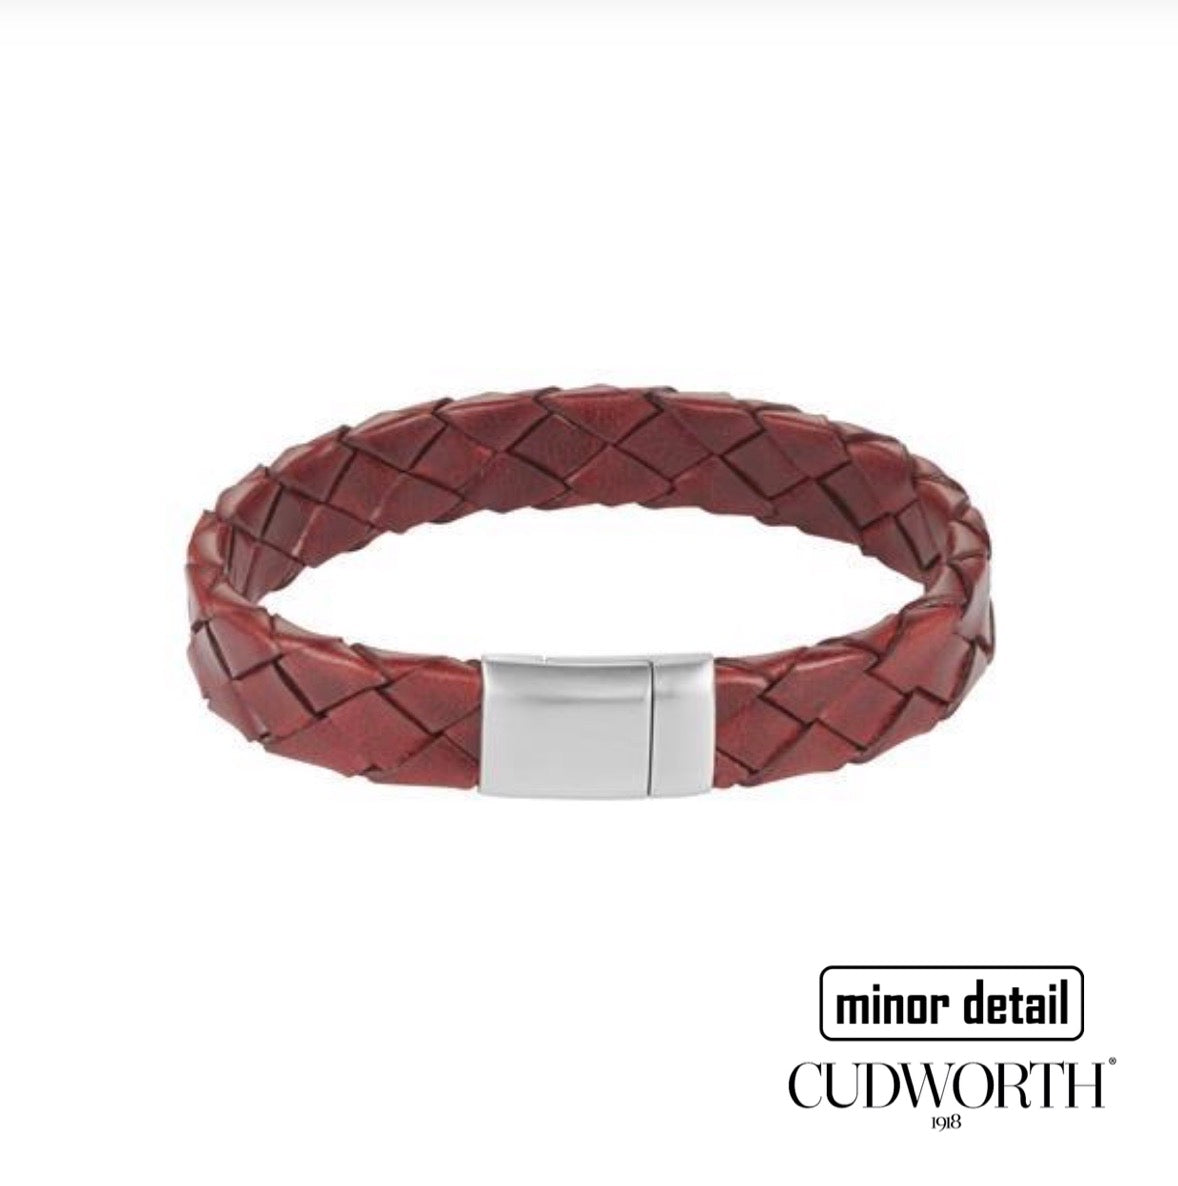 Mens Woven Bracelet by Cudworth in Italian Oxblood Red Leather